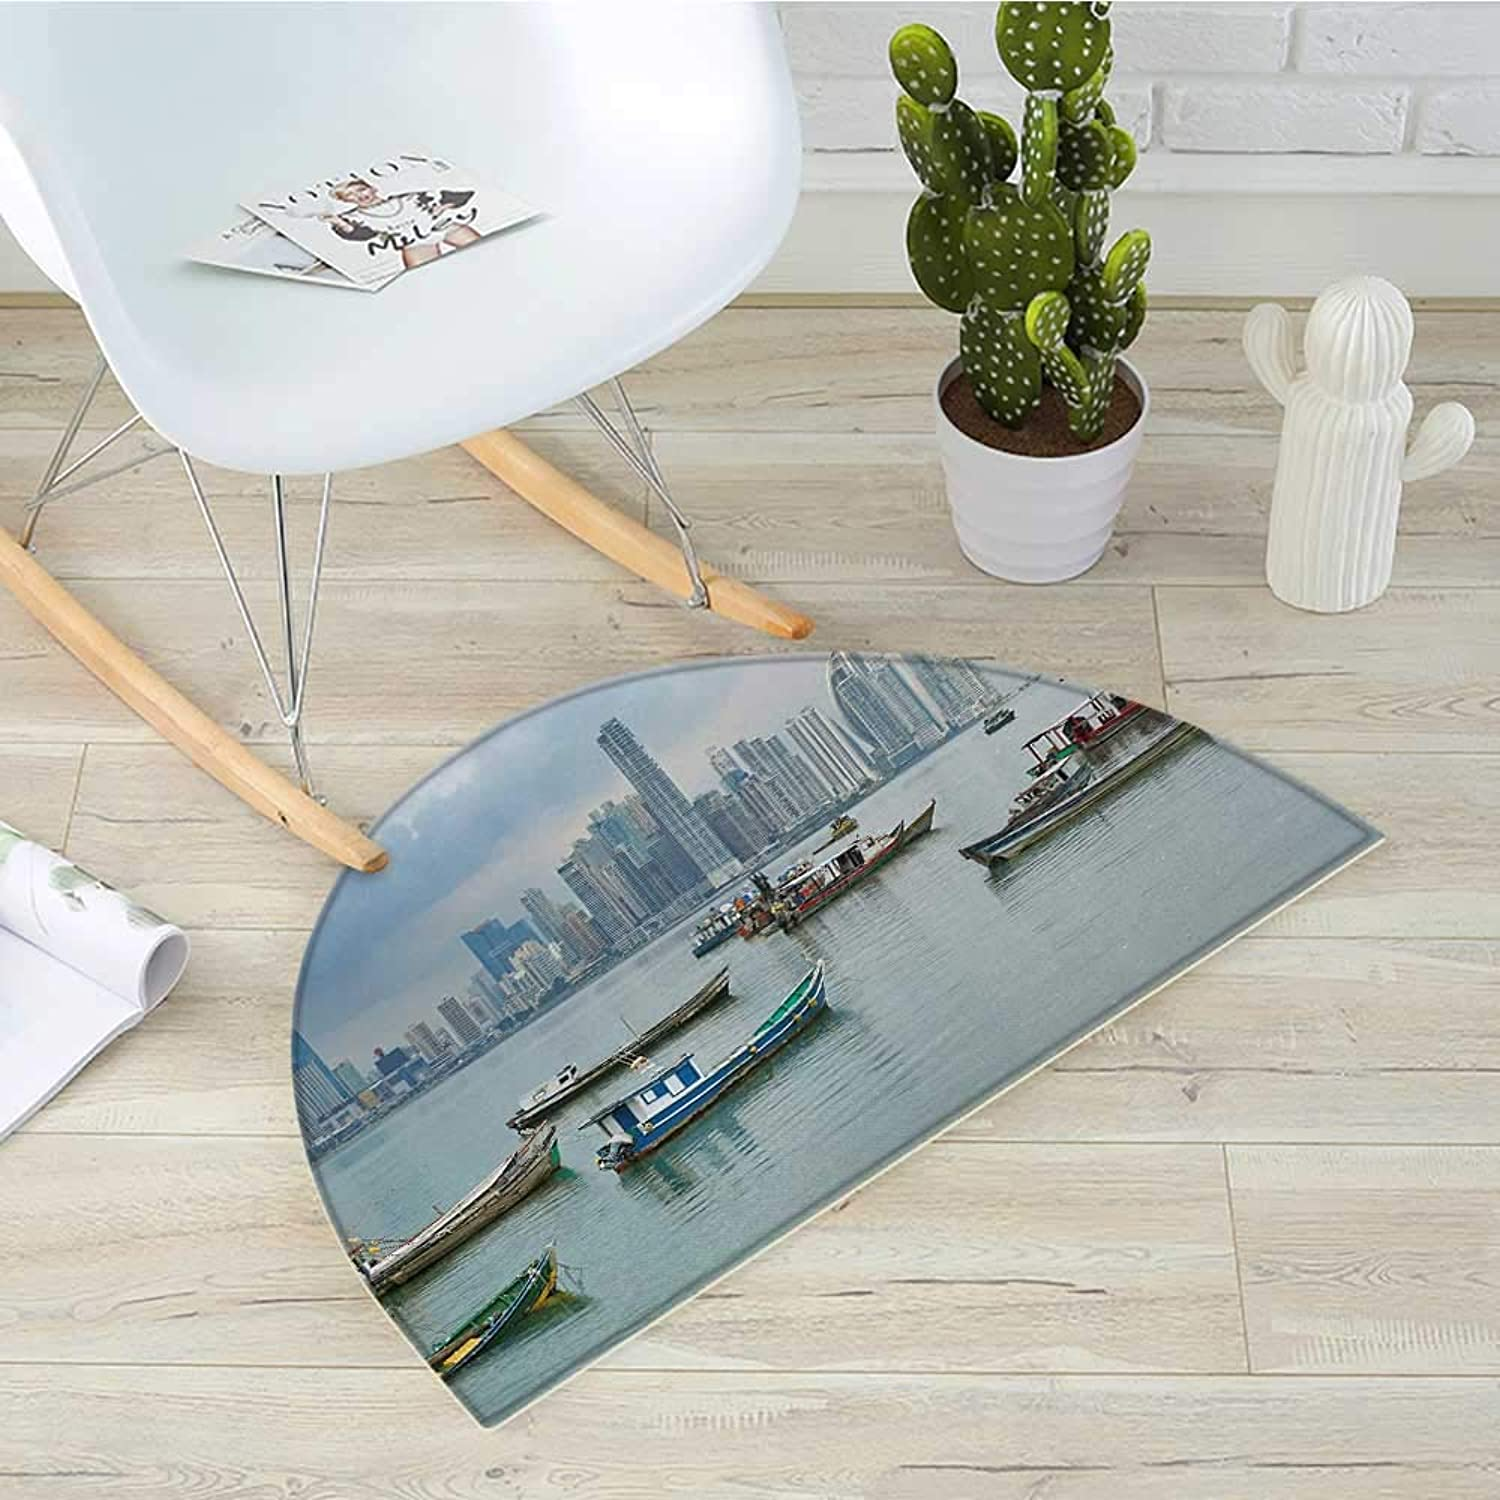 Landscape Half Round Door mats Anchored Fishing Boats Skyscrapers Panama Cityscape Pacific Coast Central America Bathroom Mat H 39.3  xD 59  Multicolor